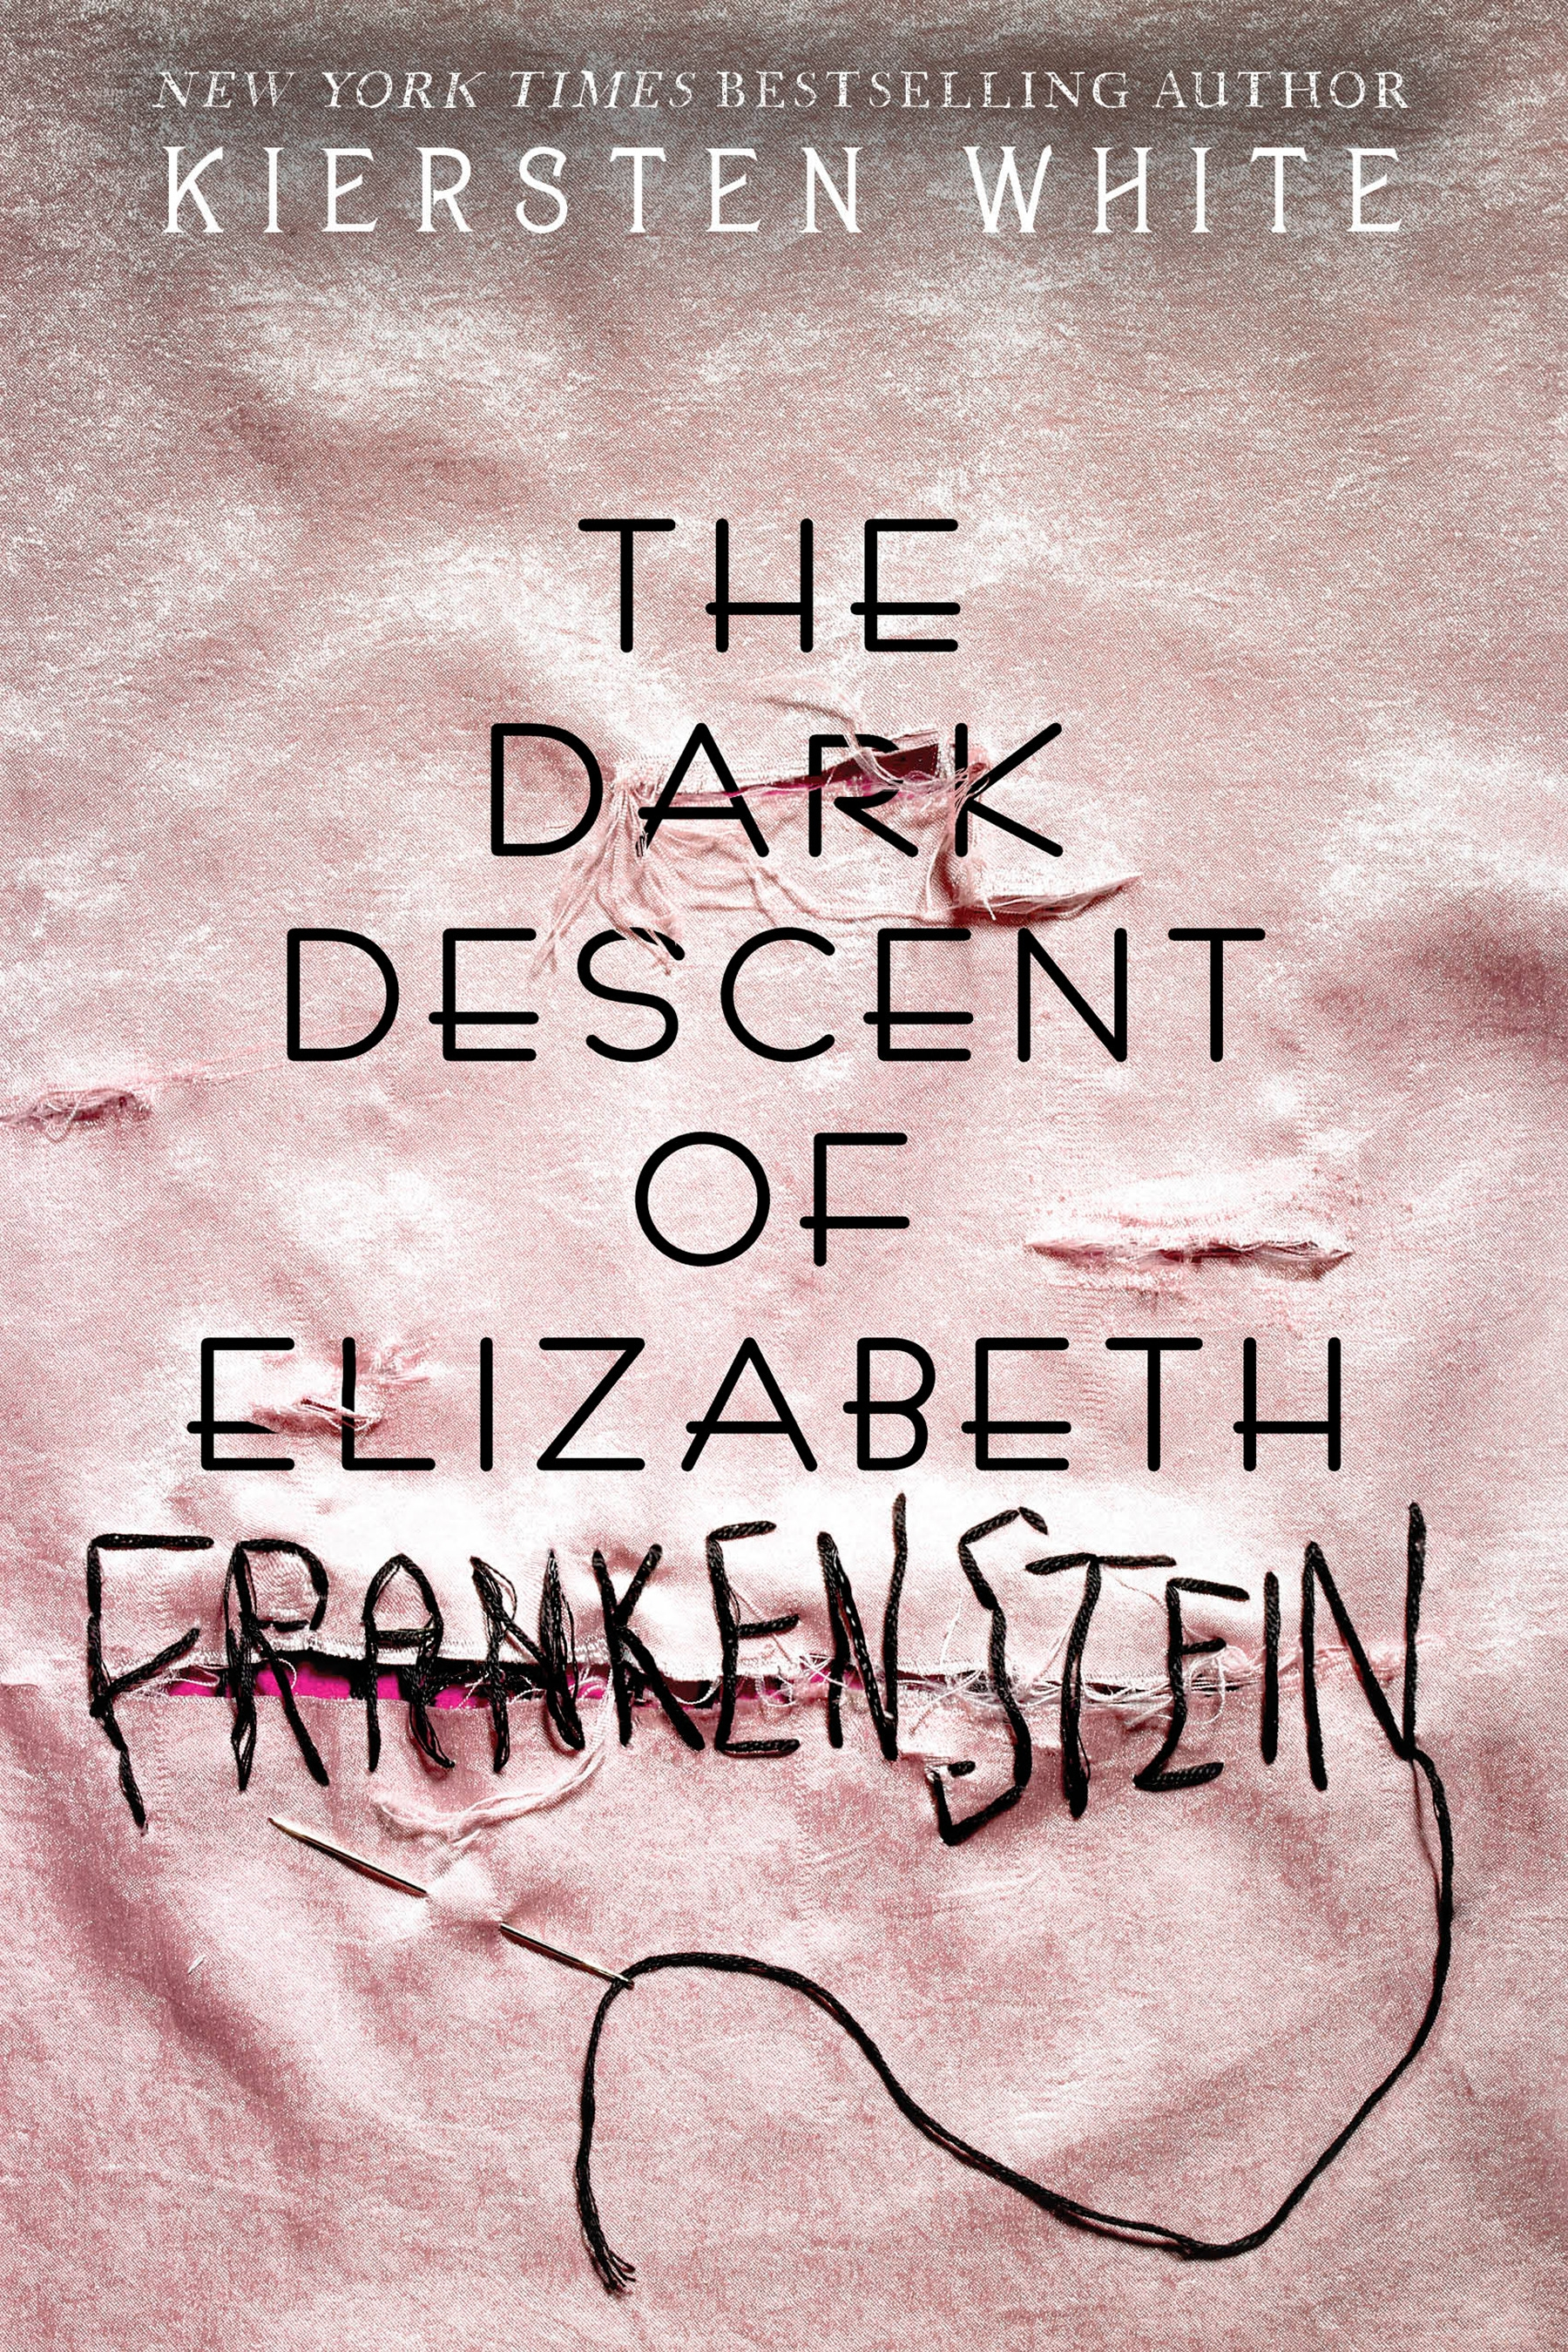 dark descent of elizabeth frankenstein.jpg